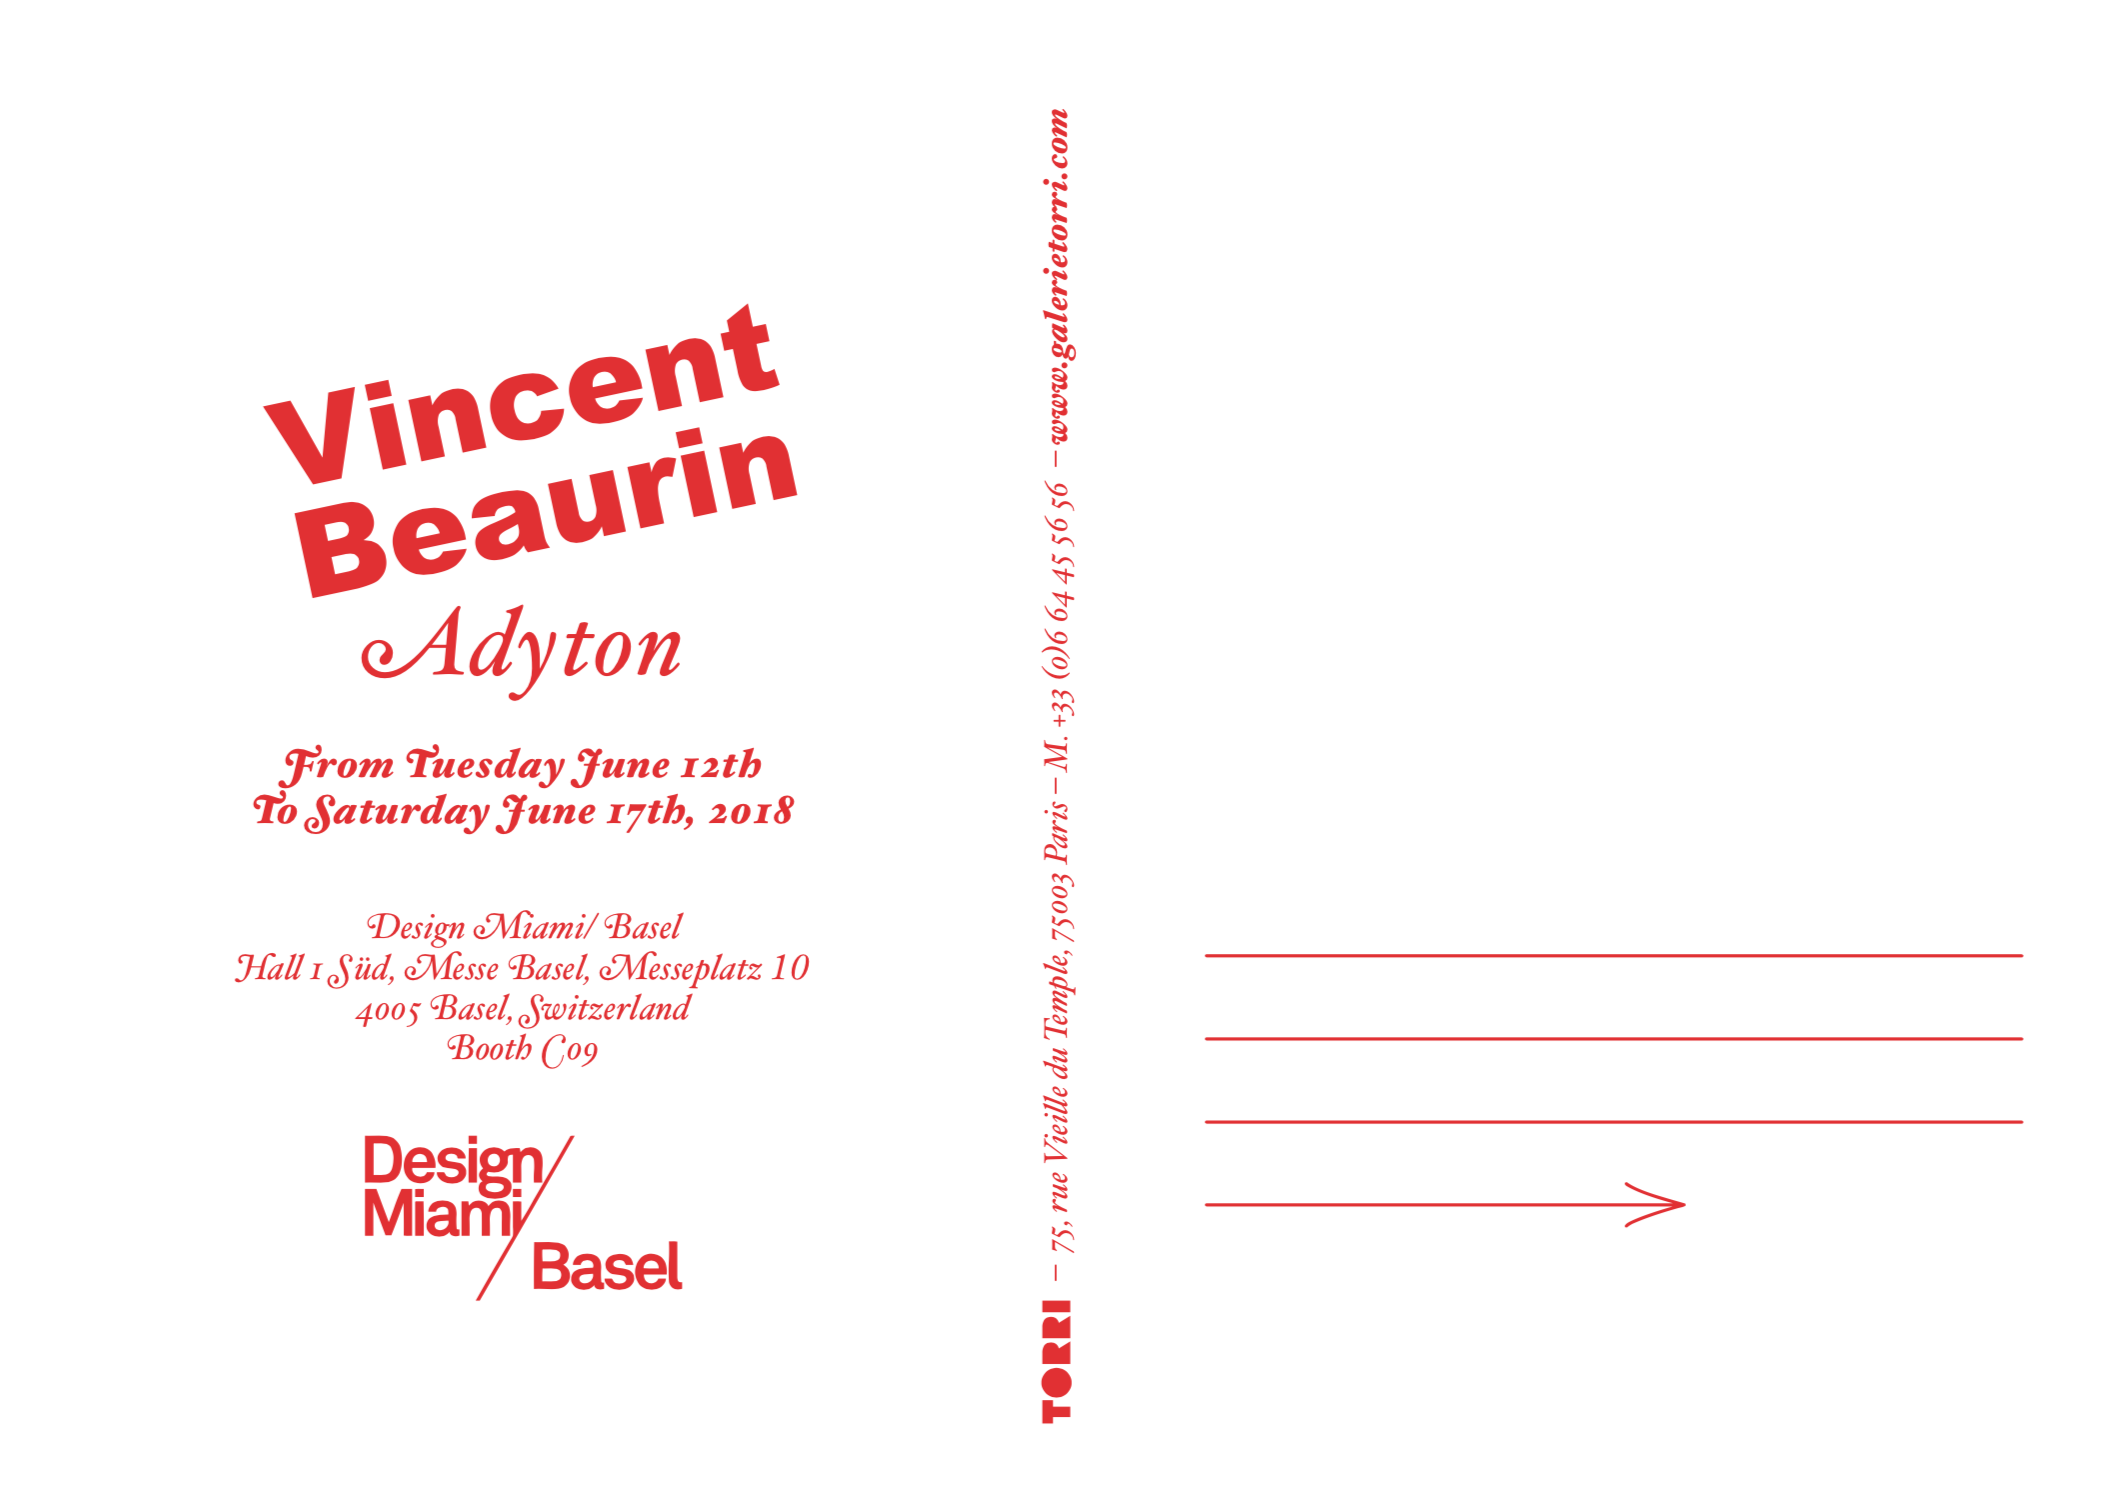 Vincent BEAURIN